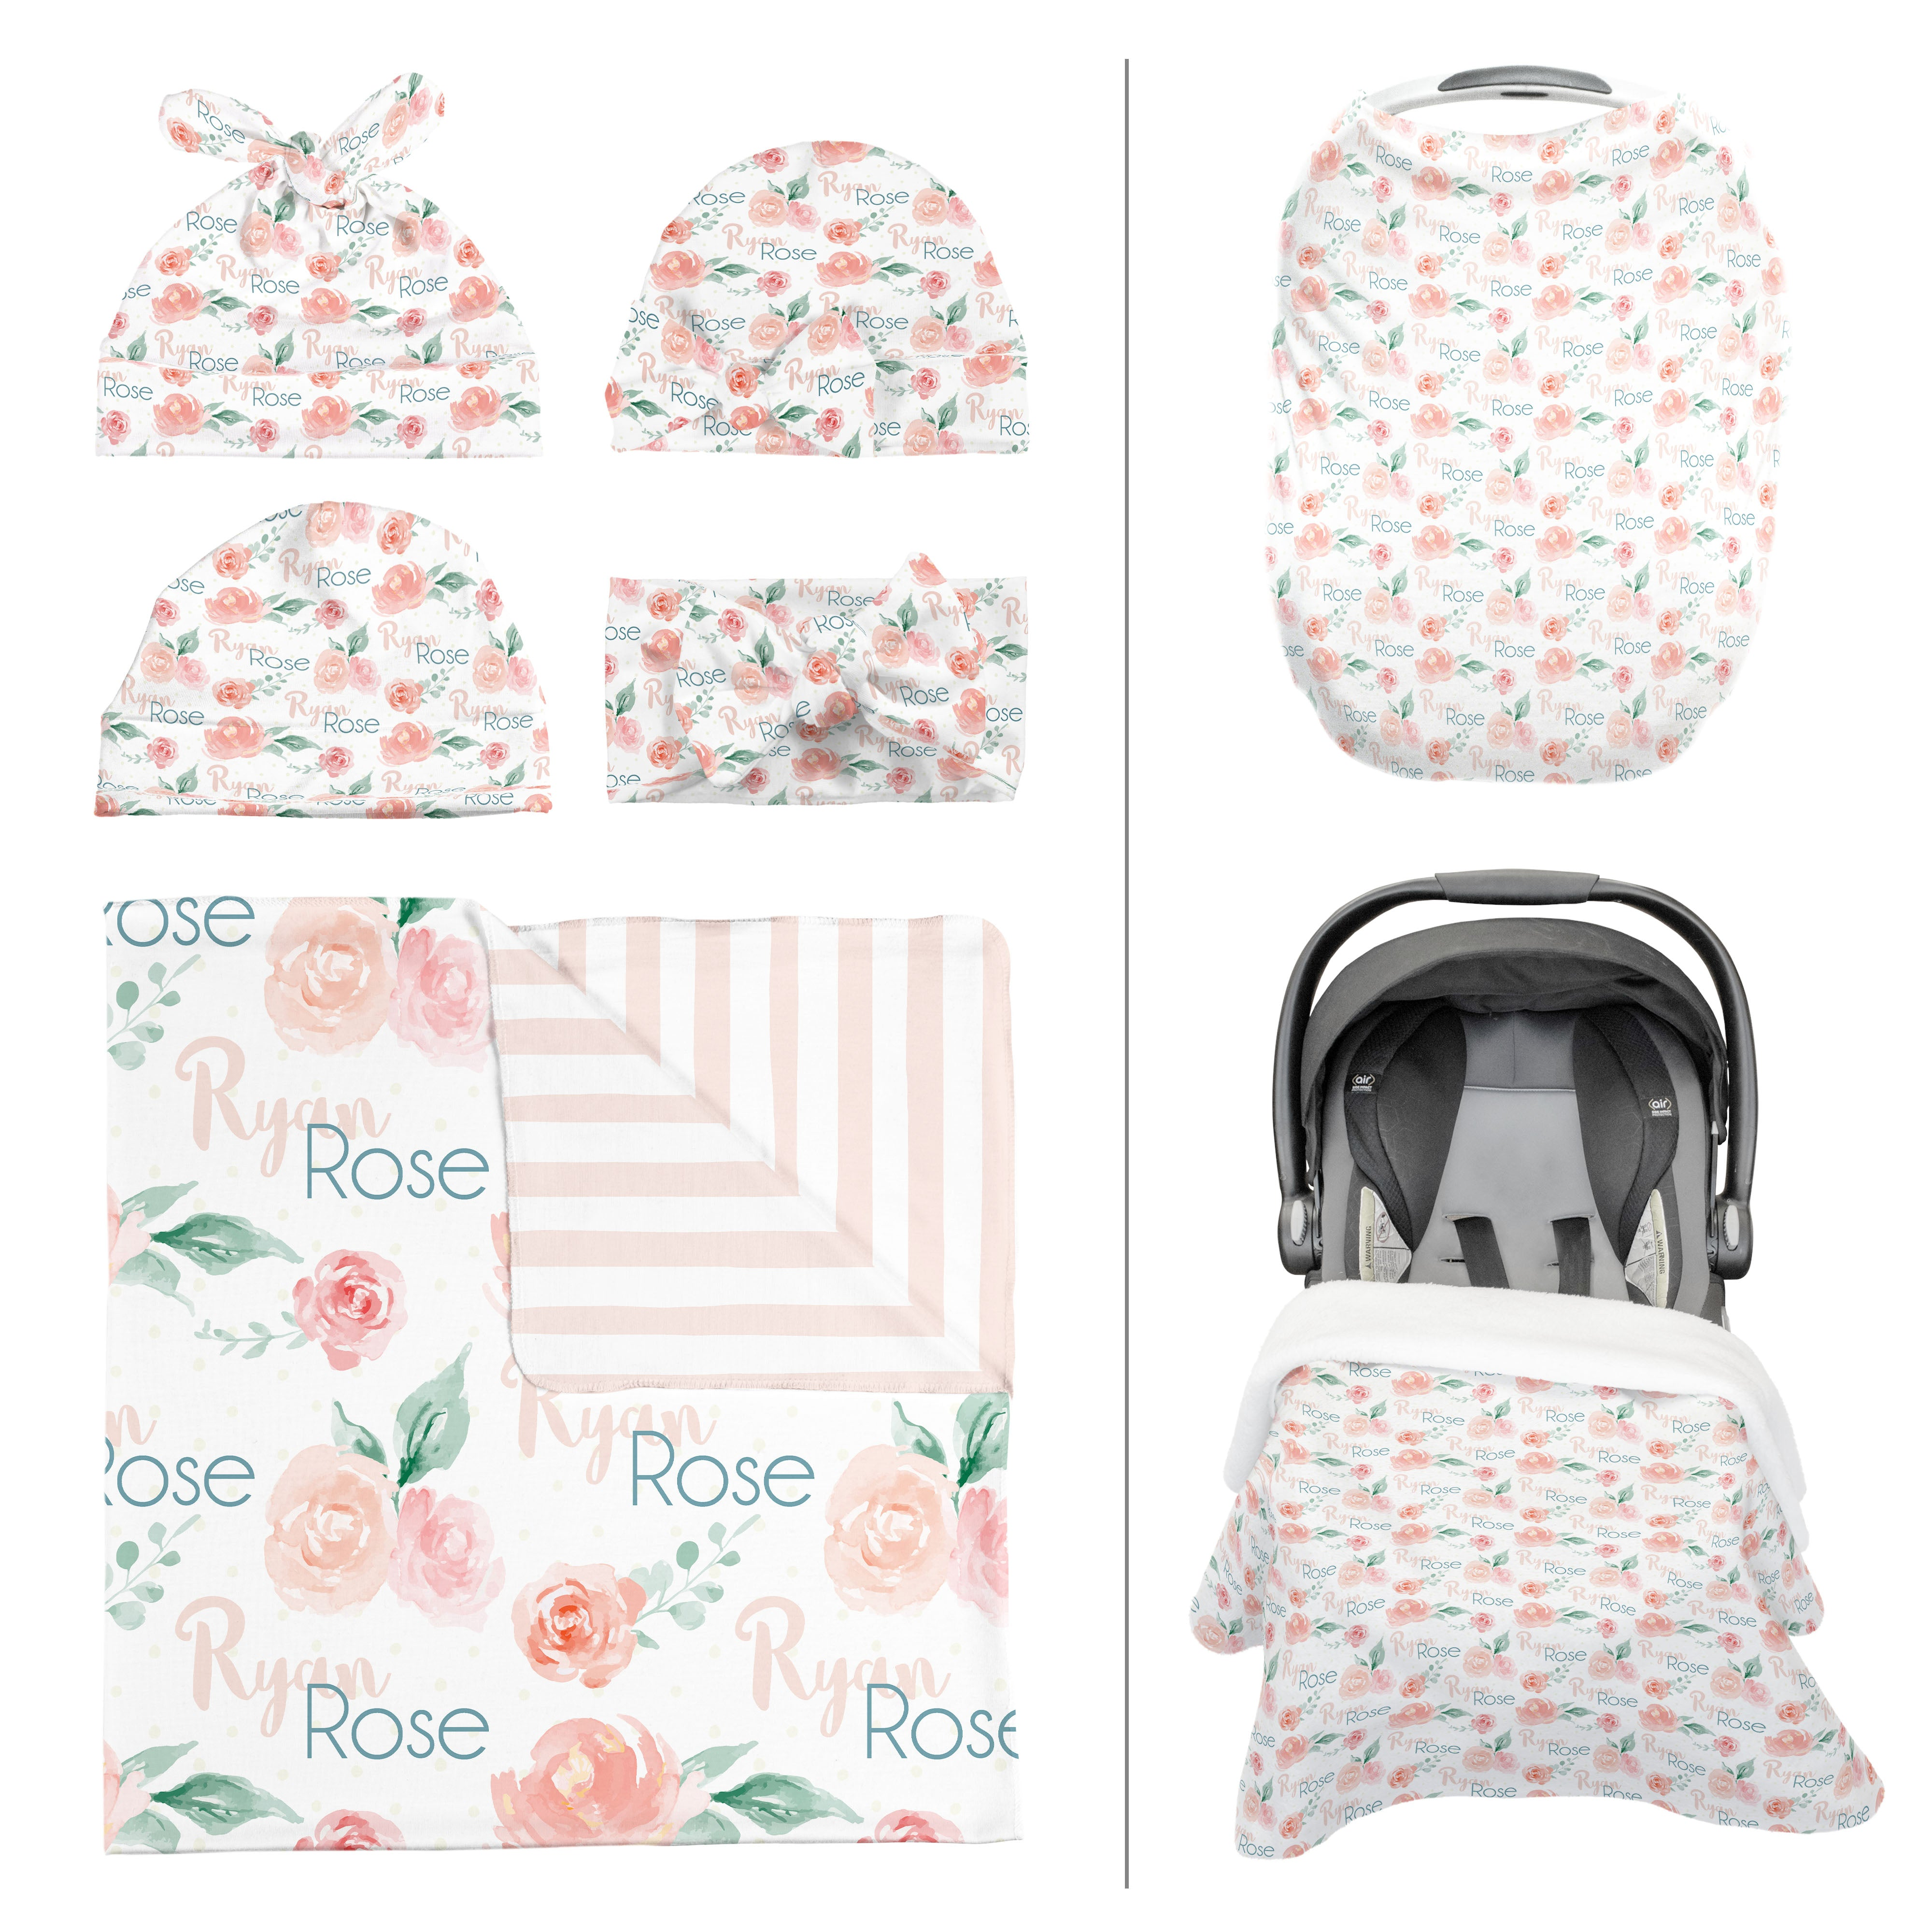 Ryan Rose | Take Me Home Bundle